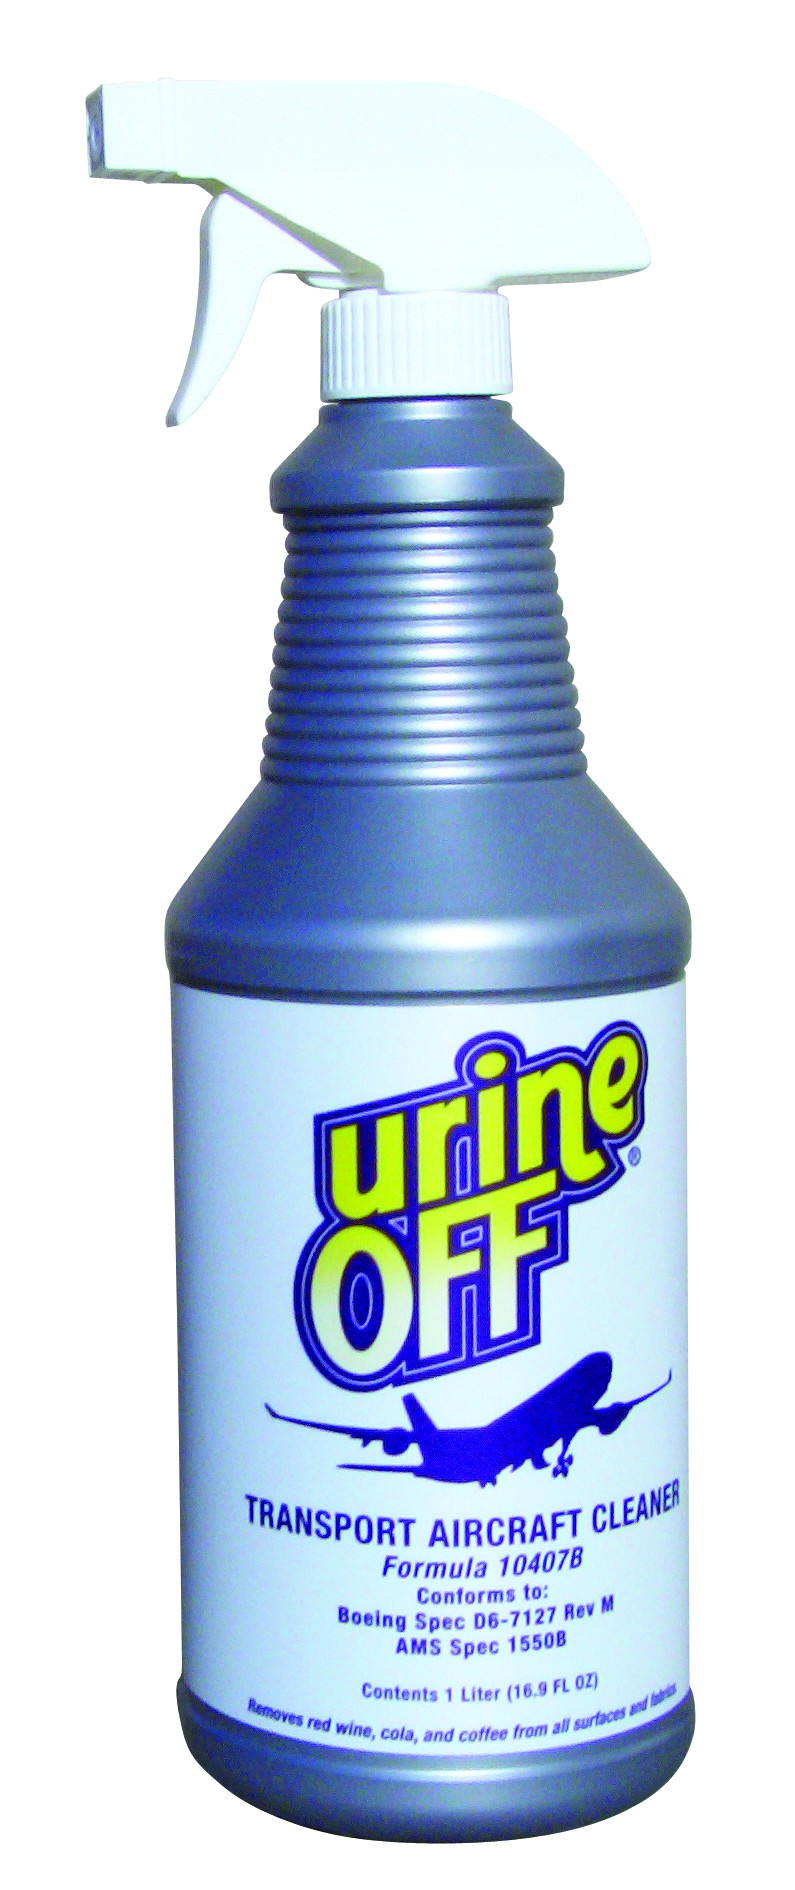 Urine Off Aircraft Cleaner 1 Liter Spray Bottle 1 Liter